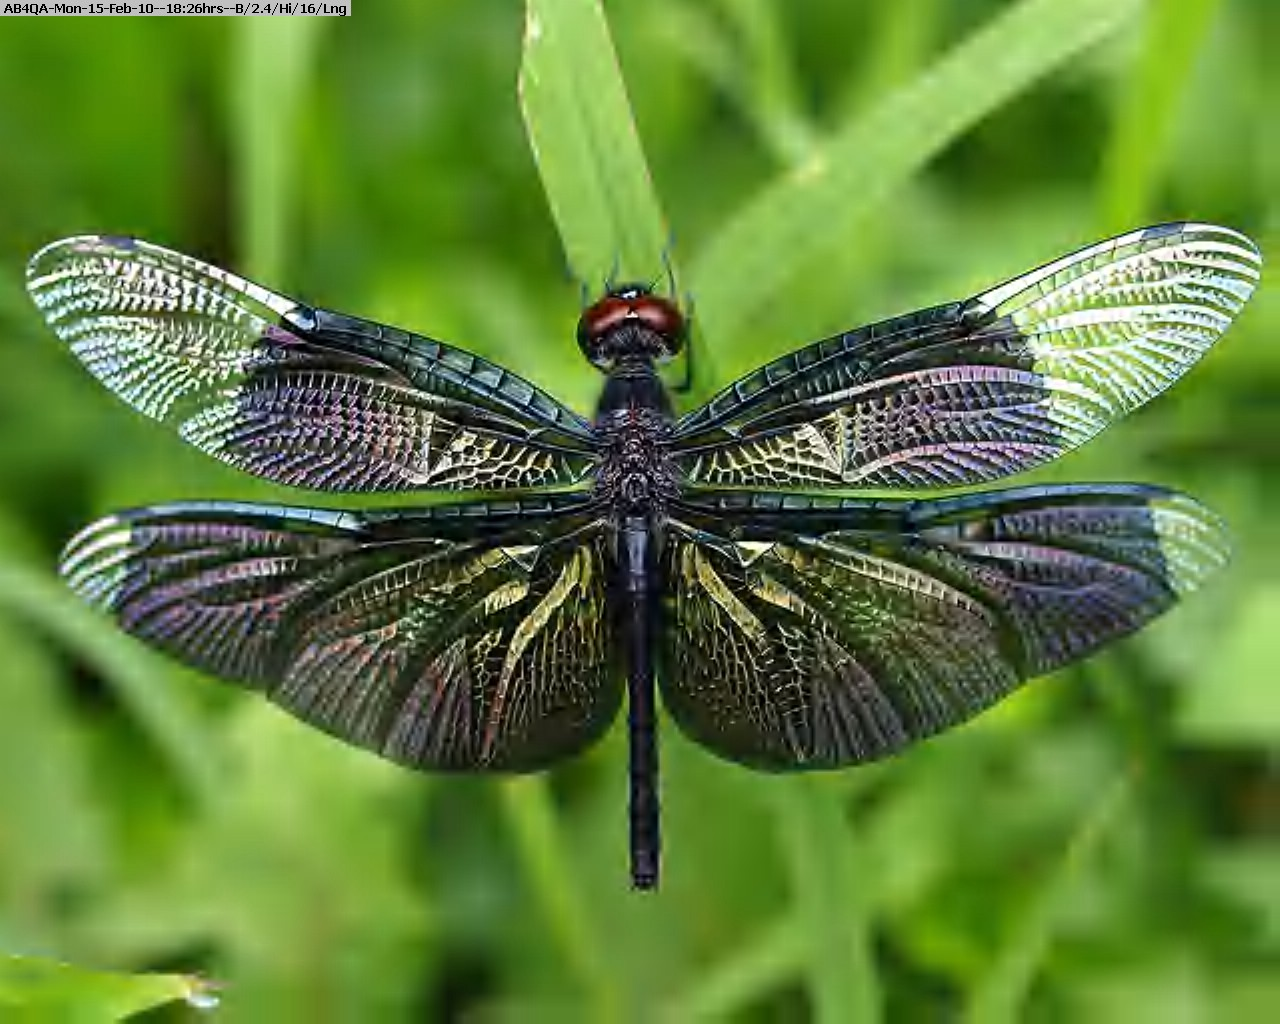 100215172319-Dragonfly_insect.jpg